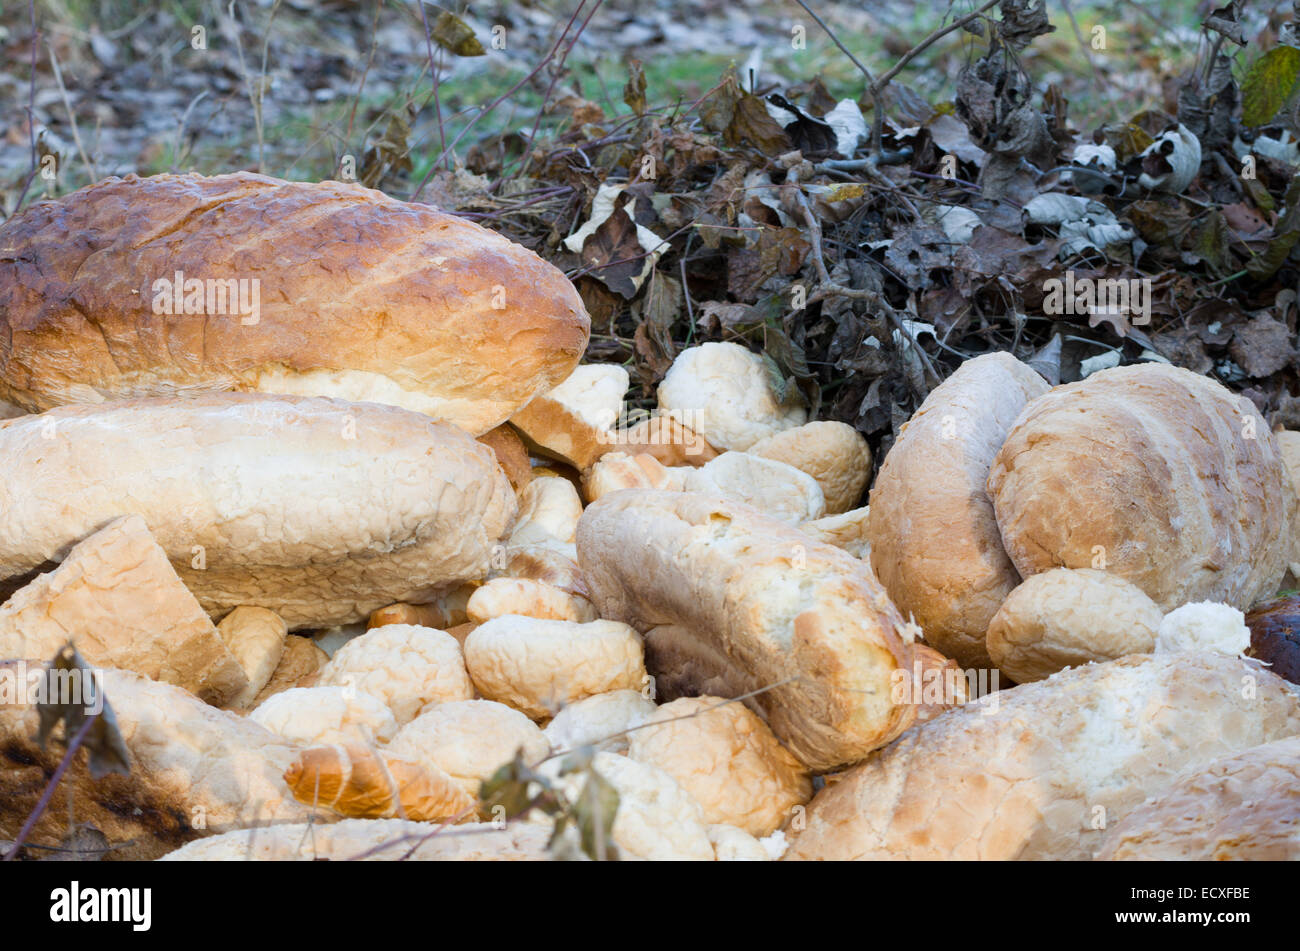 Old Breads in the Nature Left for Wild Animals Closeup - Stock Image